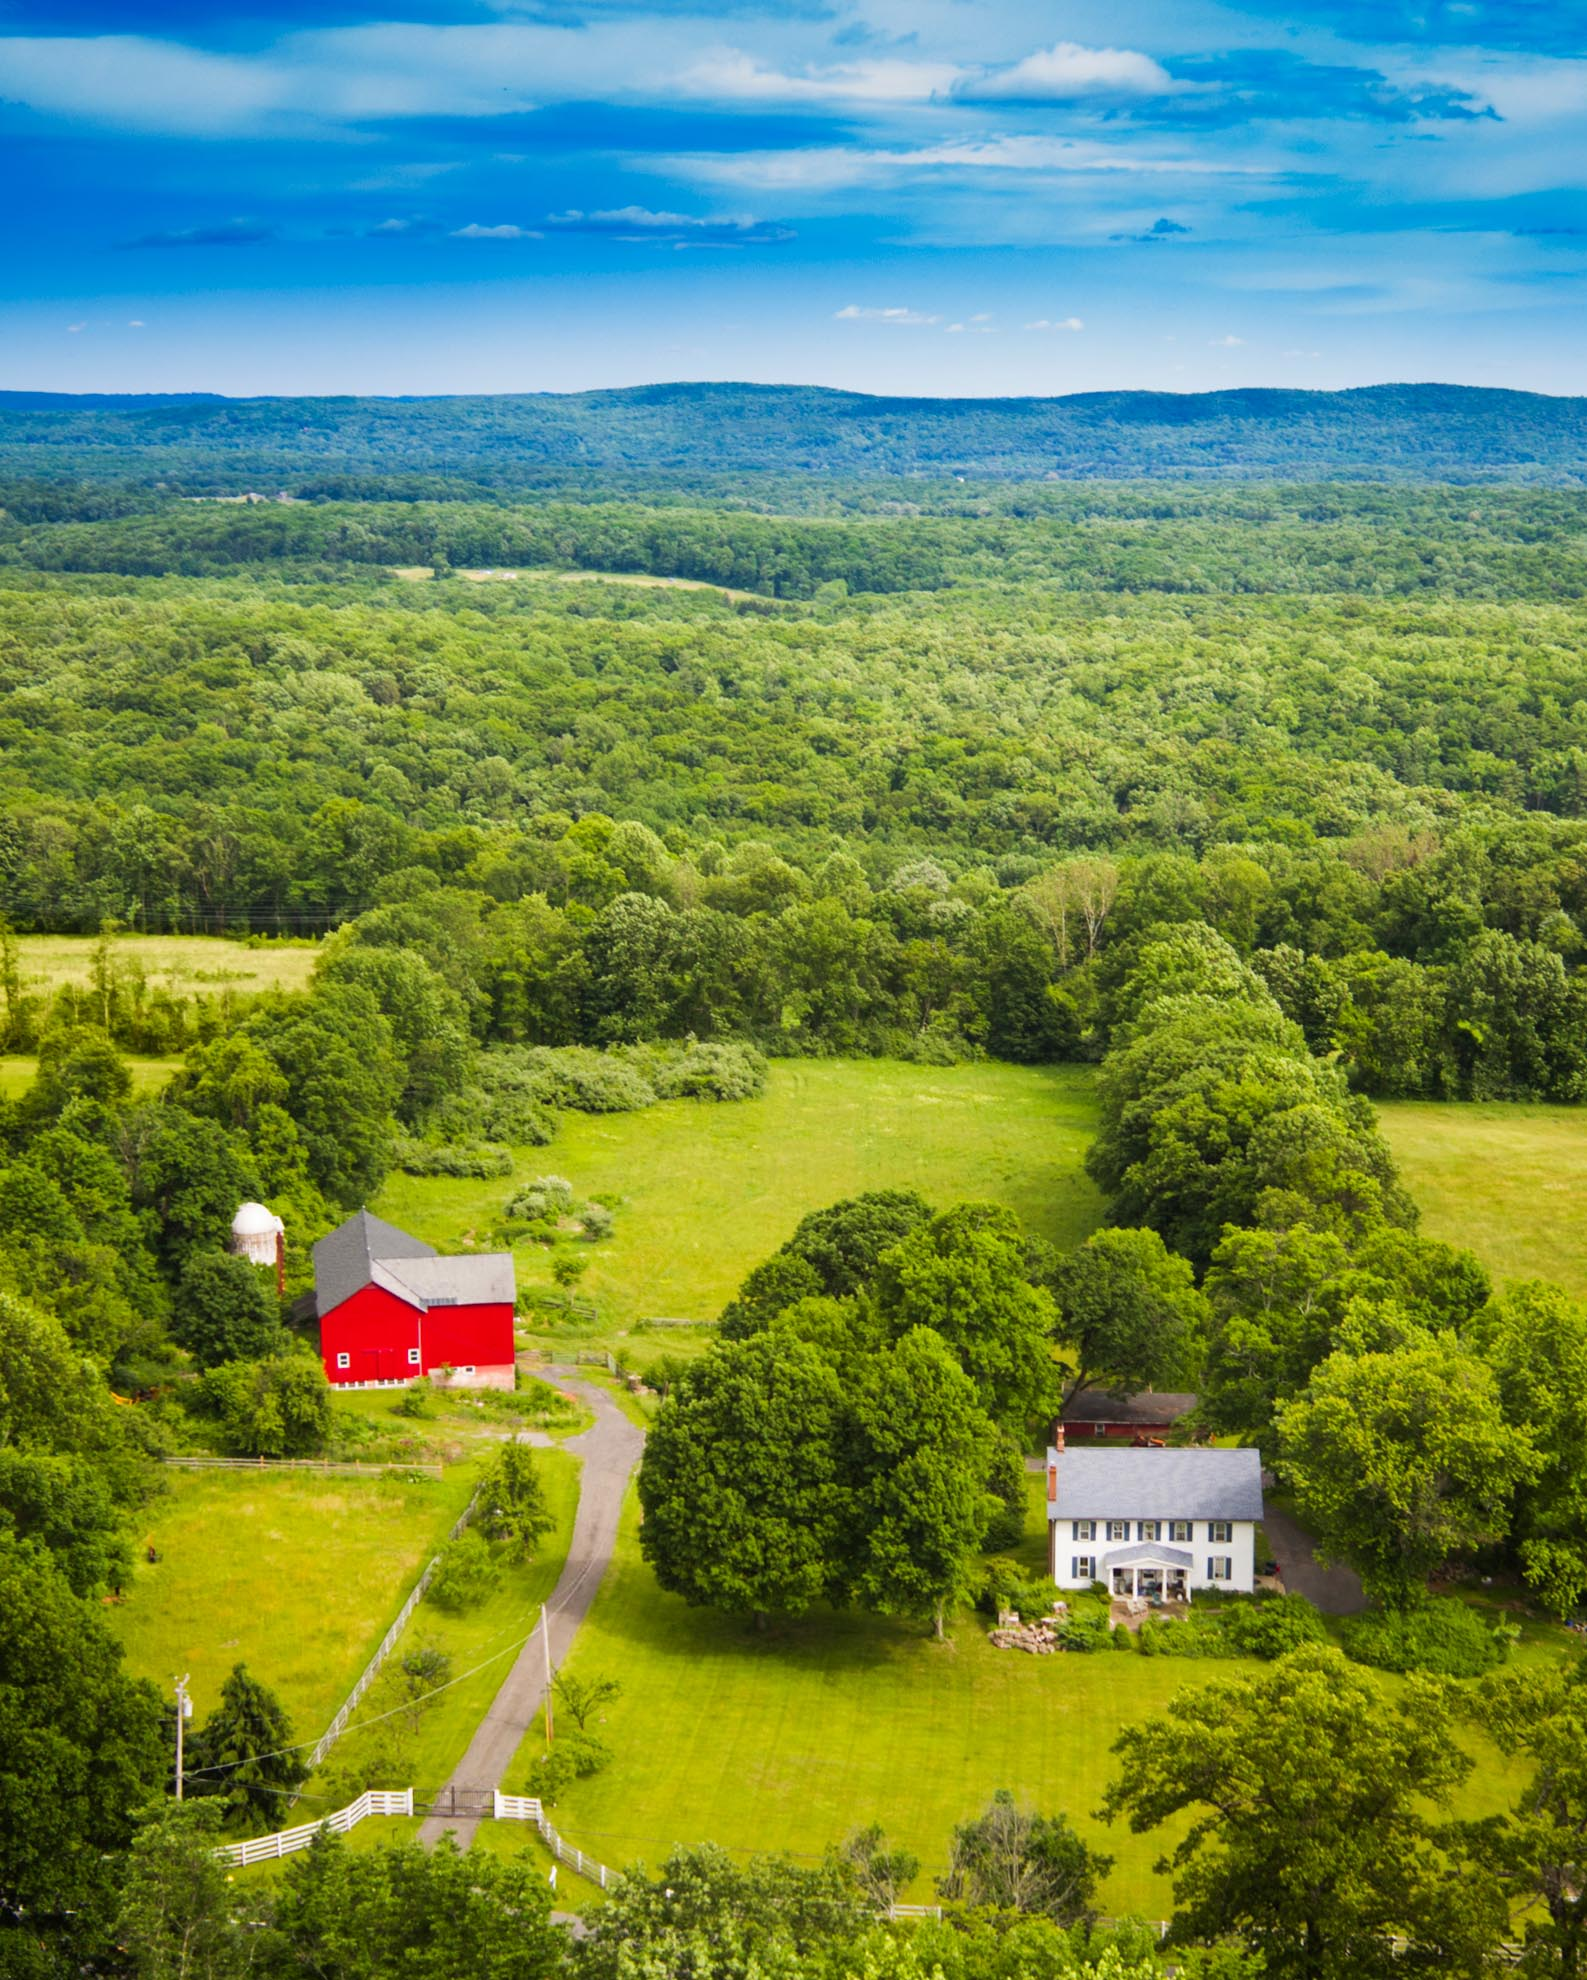 Drone Photograph of Farm Home and Barn in New Jersey